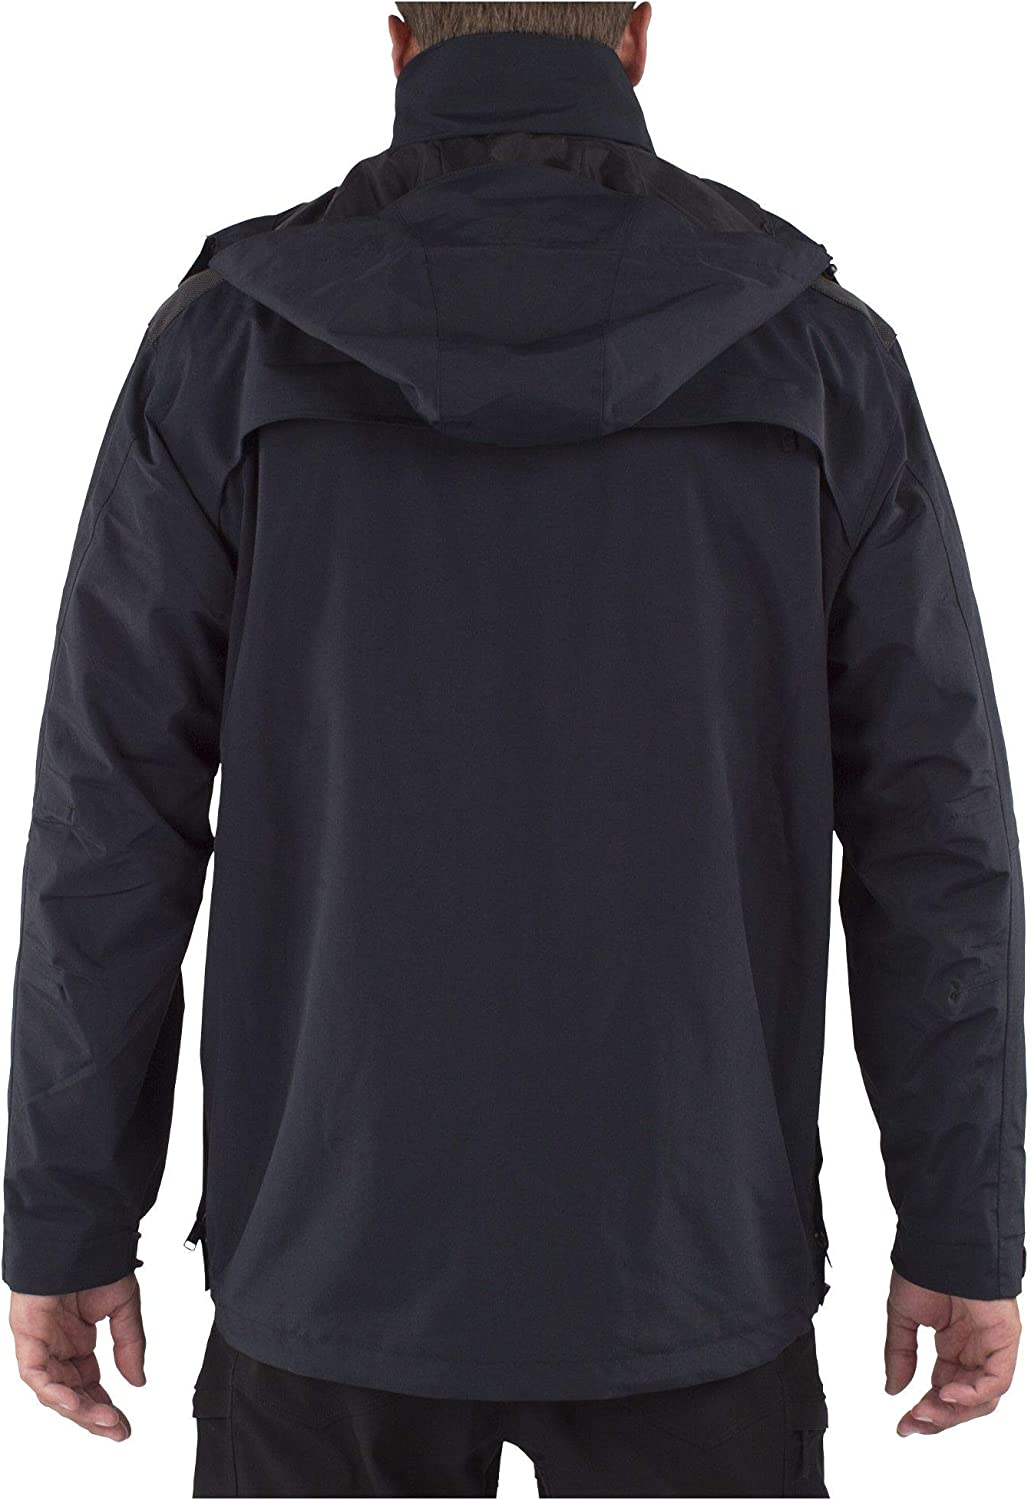 5.11 Tactical Mens First Responder Jacket Style 48197 Modular 5-in-1 All-Weather Protection